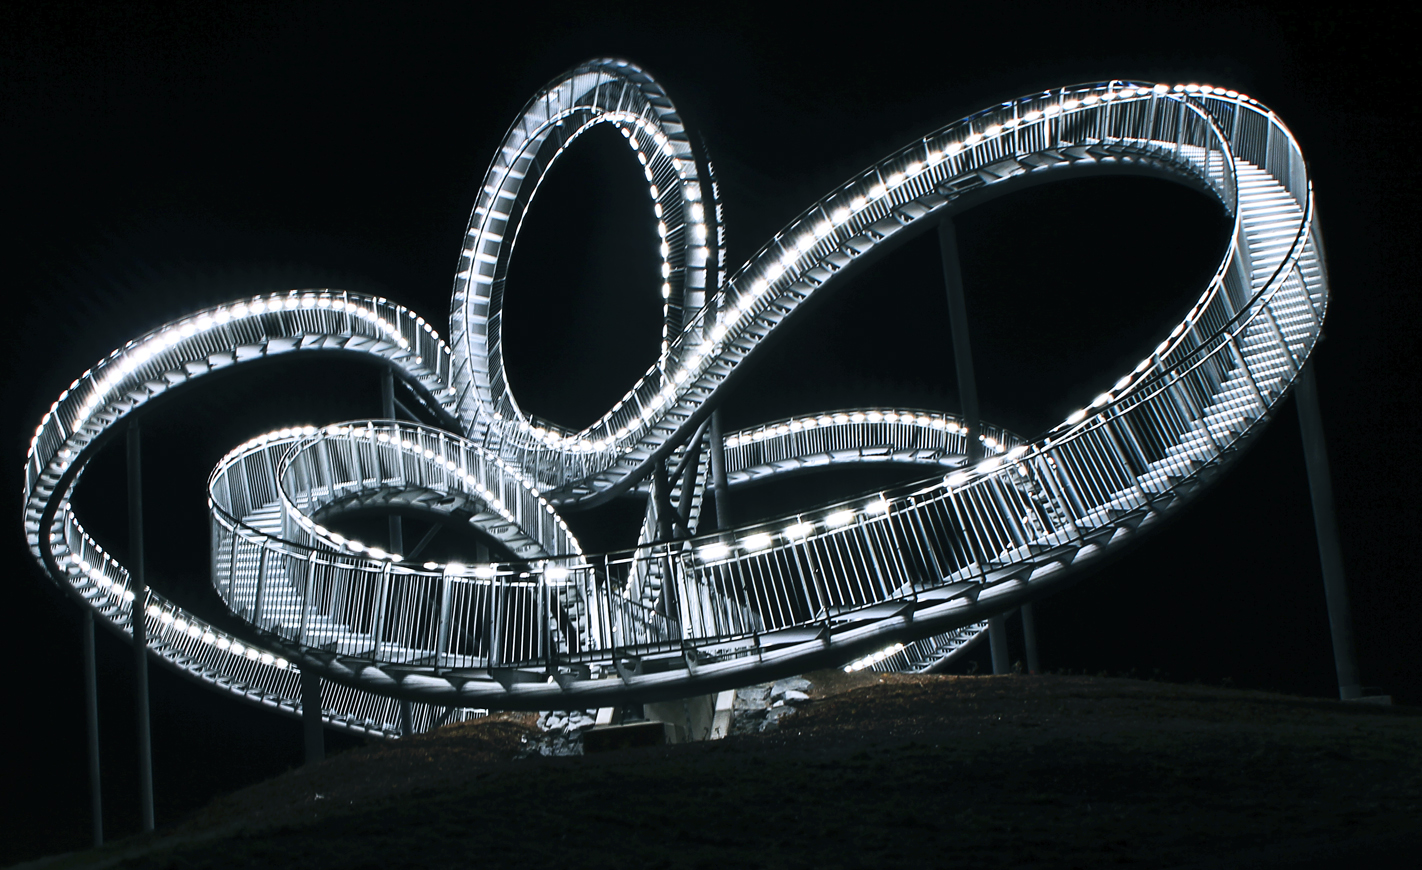 Tiger and Turtle...and another nother Point of view